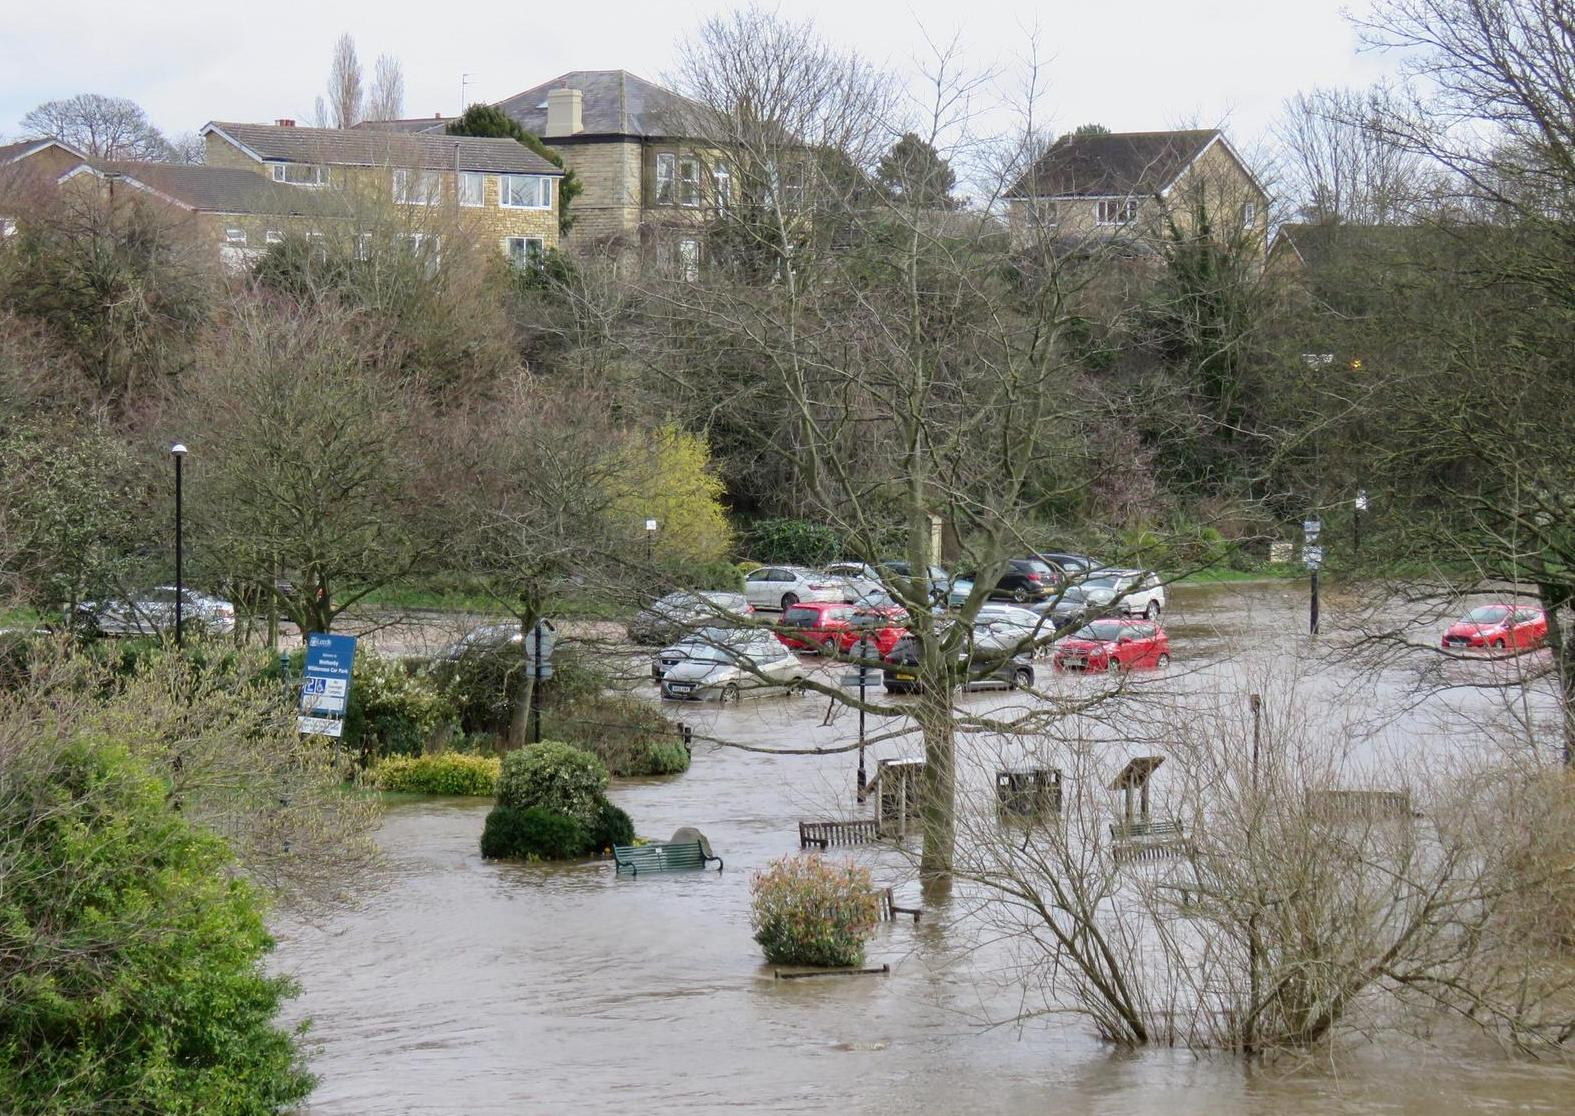 Drivers warned to move cars as Wetherby hit by flooding